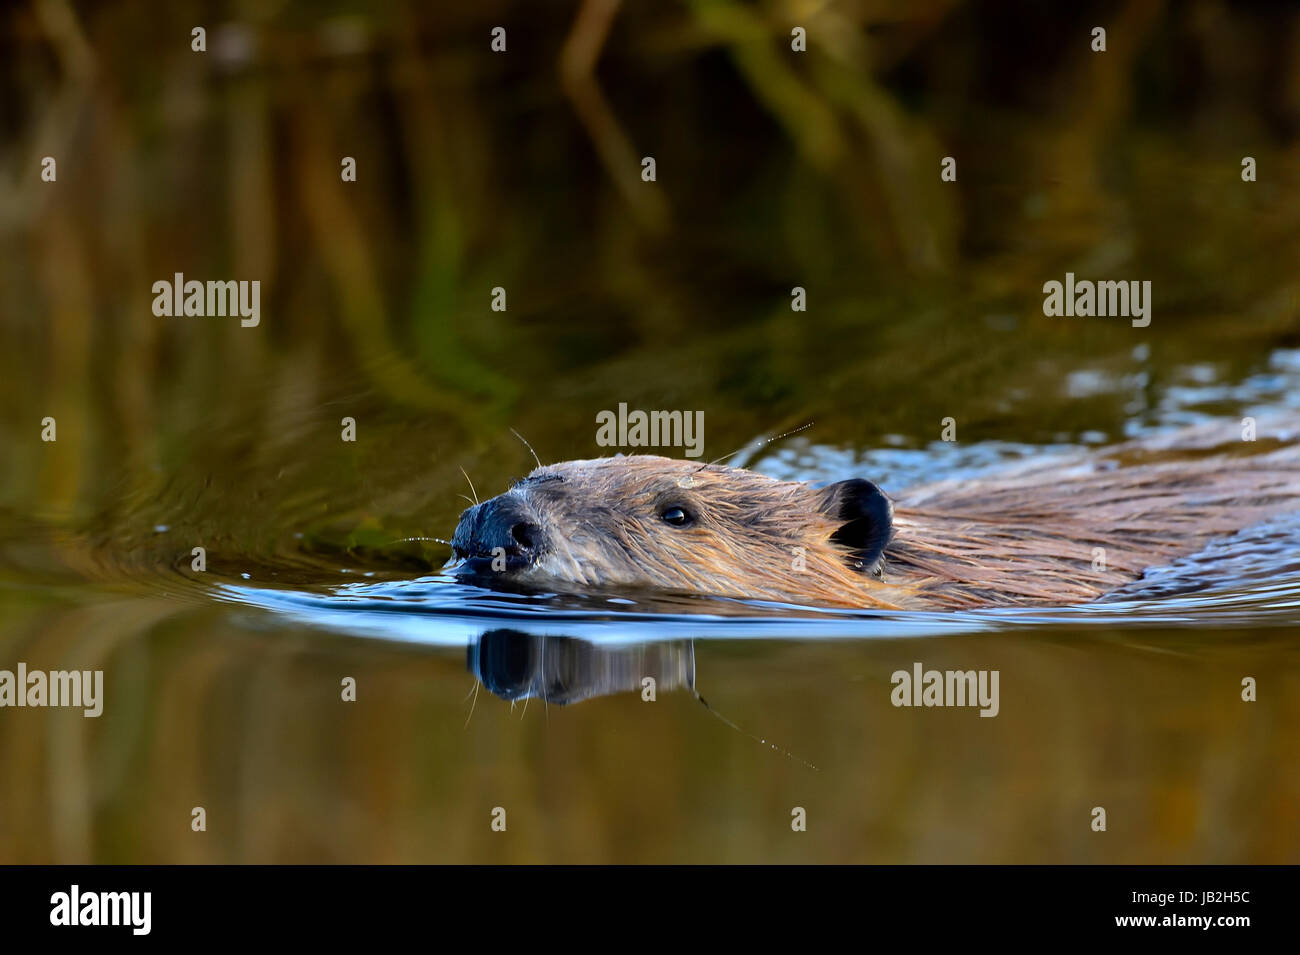 A close up inage of a wild beaver (Castor canadensis) swimming through the calm water of his pond - Stock Image